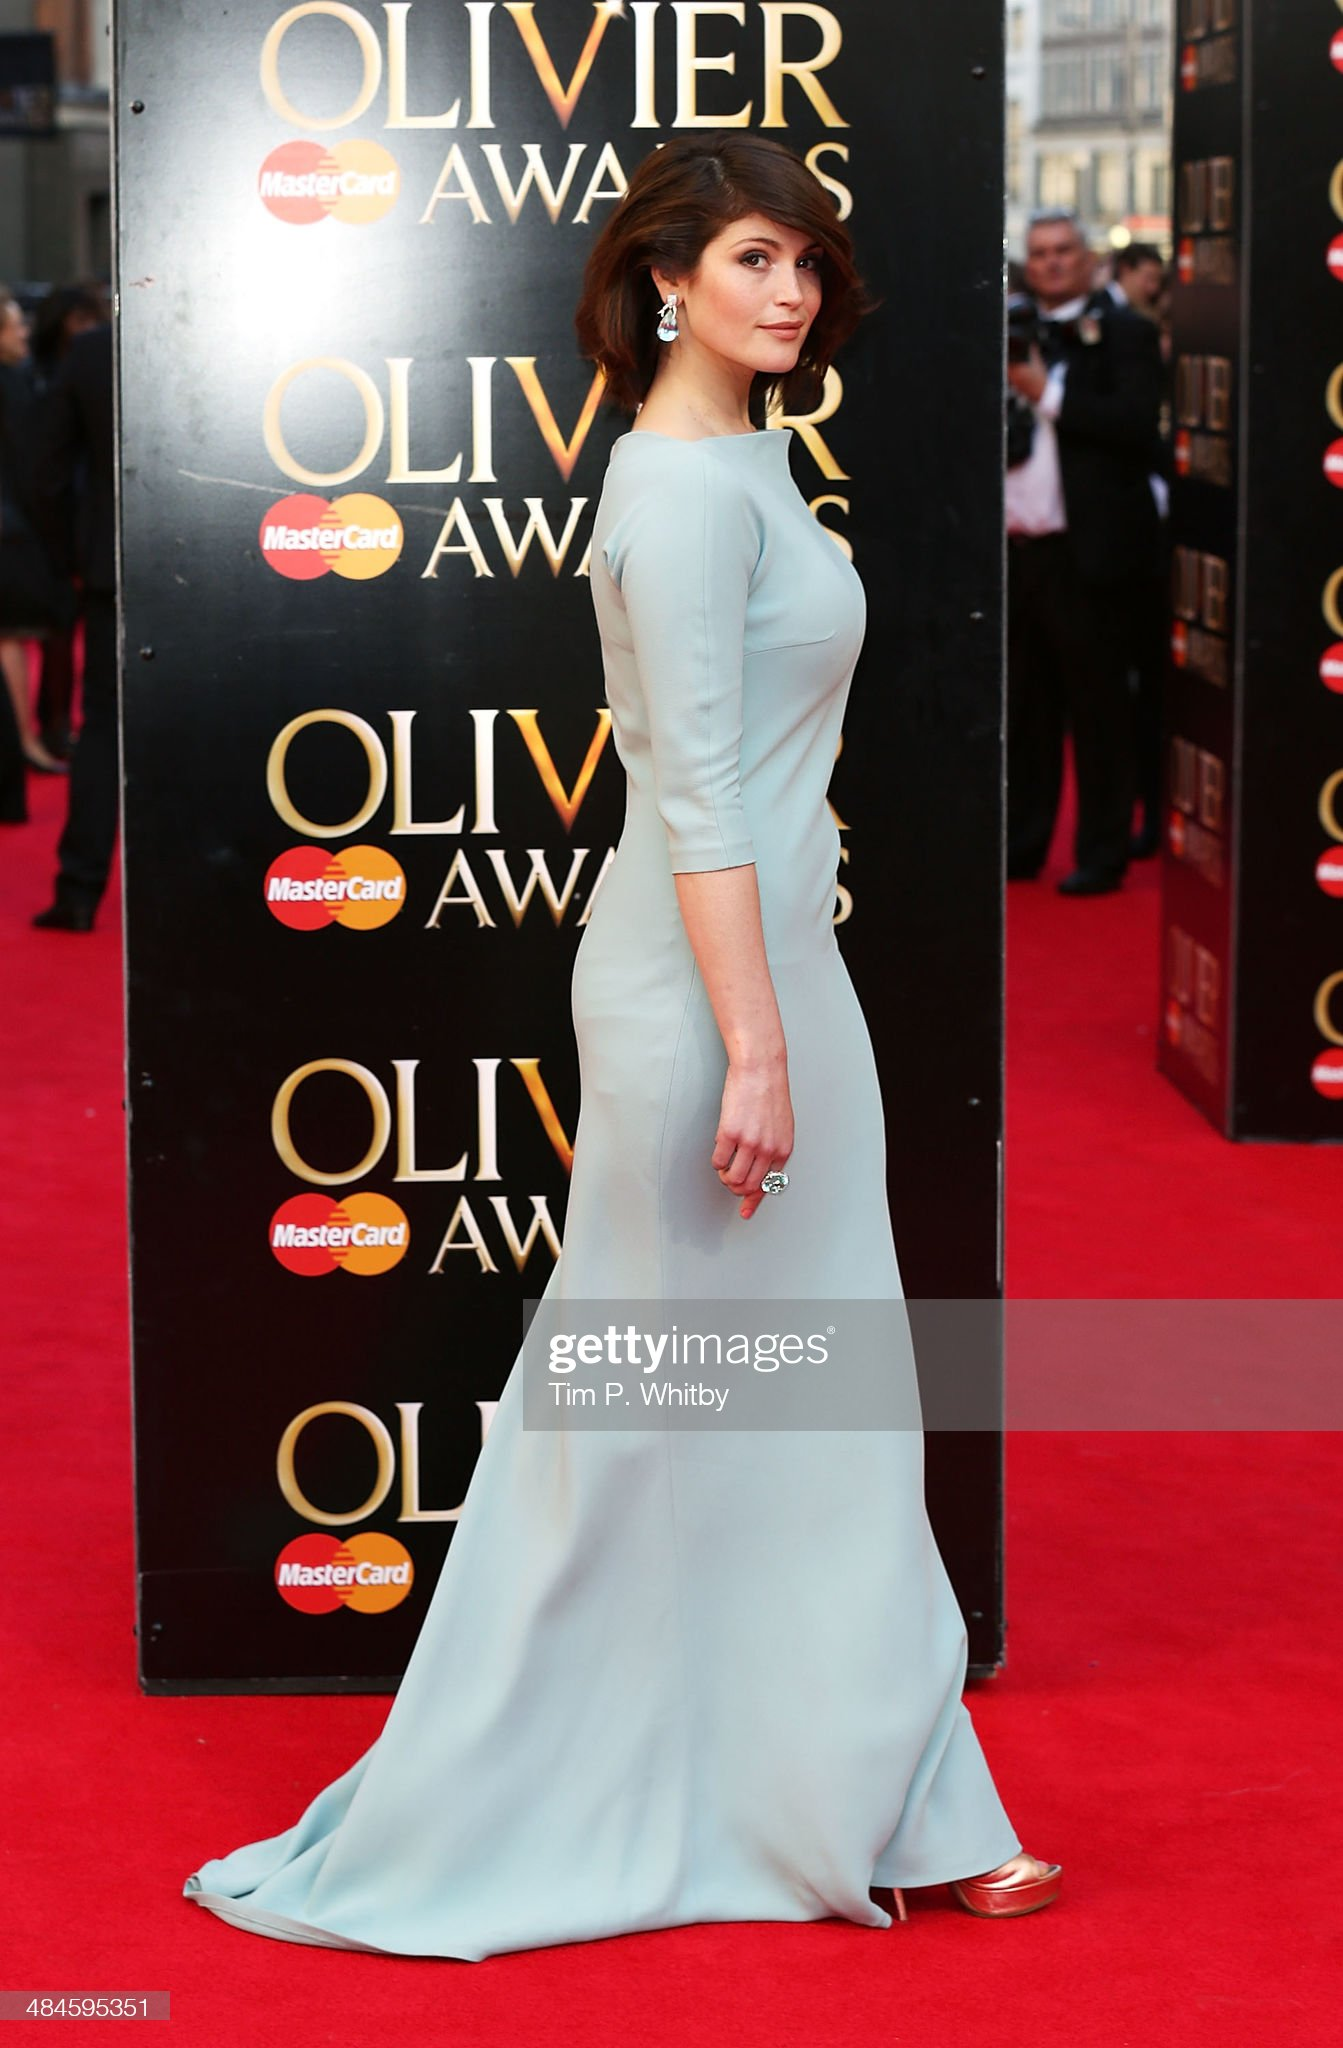 gemma-arterton-attends-the-laurence-olivier-awards-at-the-royal-opera-picture-id484595351